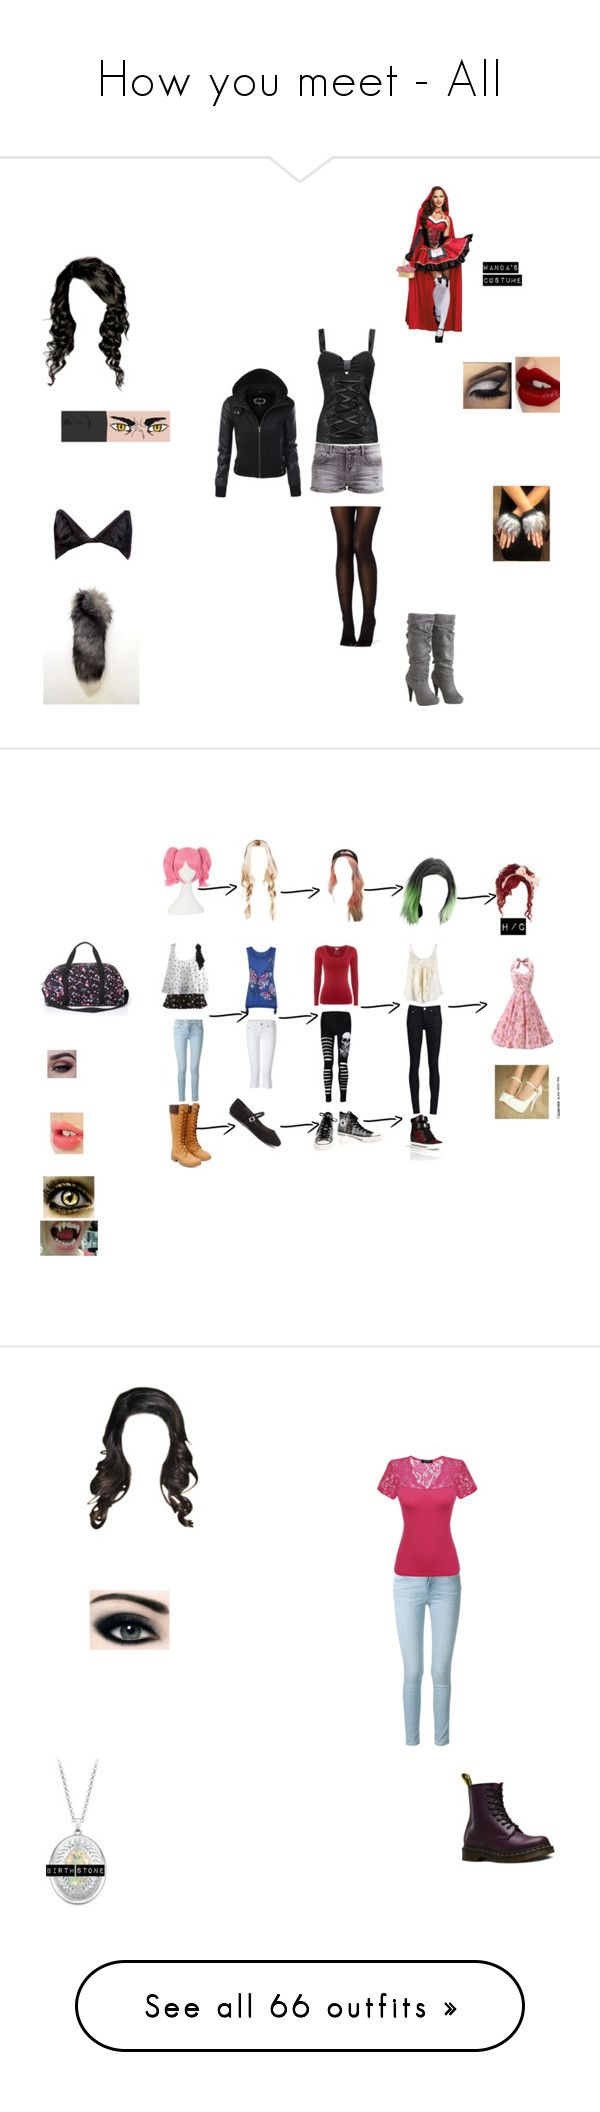 """How you meet - All"" by theglittergamer on Polyvore featuring Maison Kitsuné, LTB, Arden B., Charlotte Tilbury, KAOS, THVM, Wet Seal, White Stuff, Timberland and Victoria's Secret PINK"